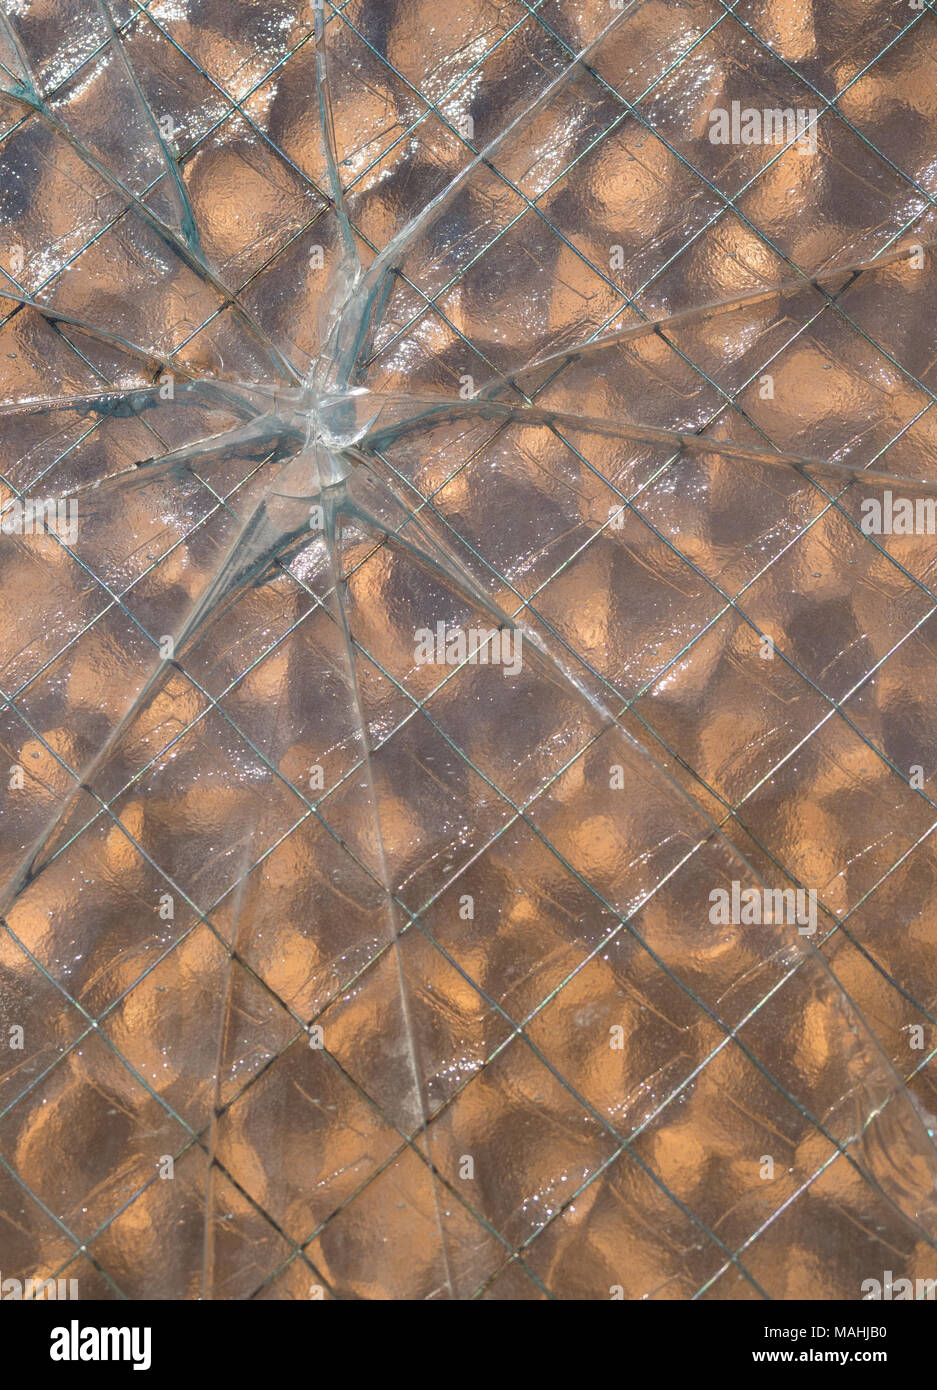 A bullet hole through wire mesh glass with glass breaks in a star pattern. - Stock Image